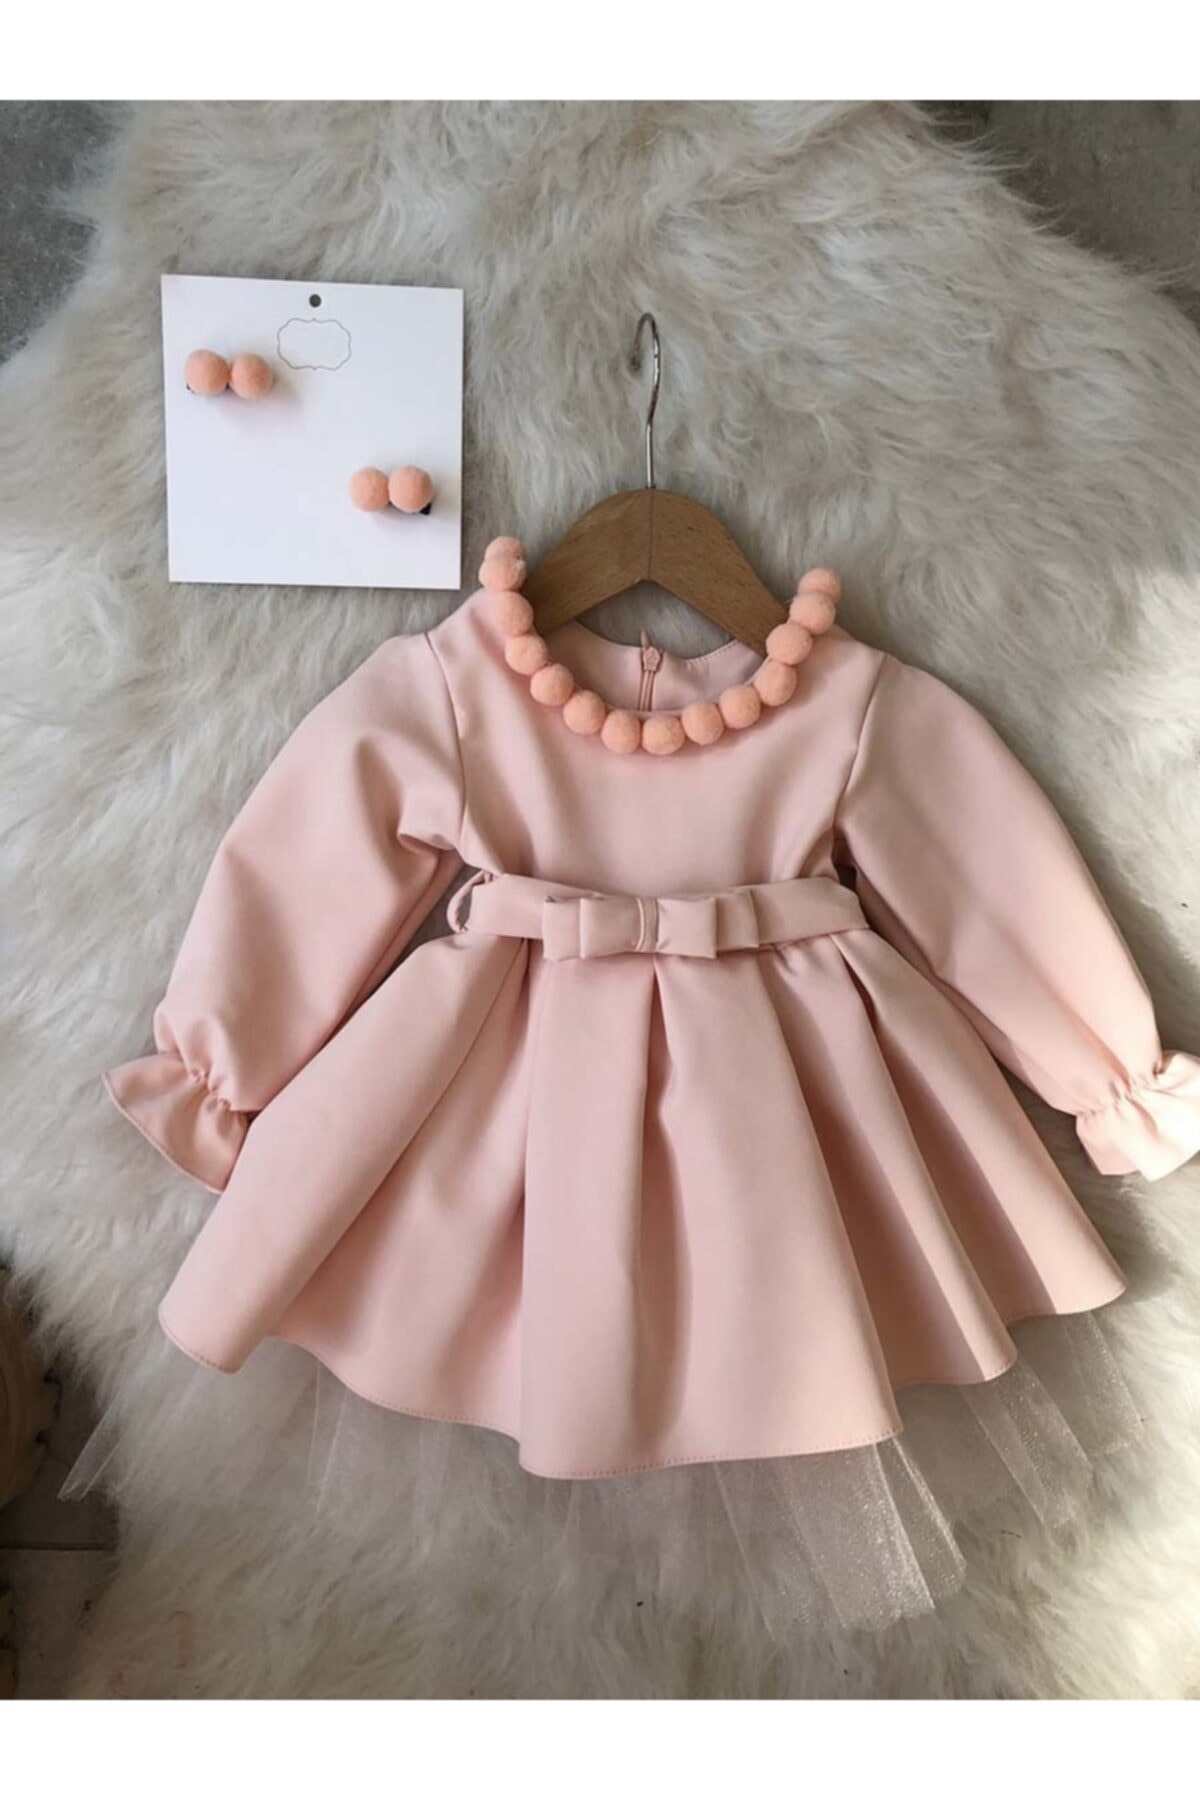 Flaneur Baby Girl Powder Long Sleeve Dress With Hair Clip For Special Occasions Pemium Quality